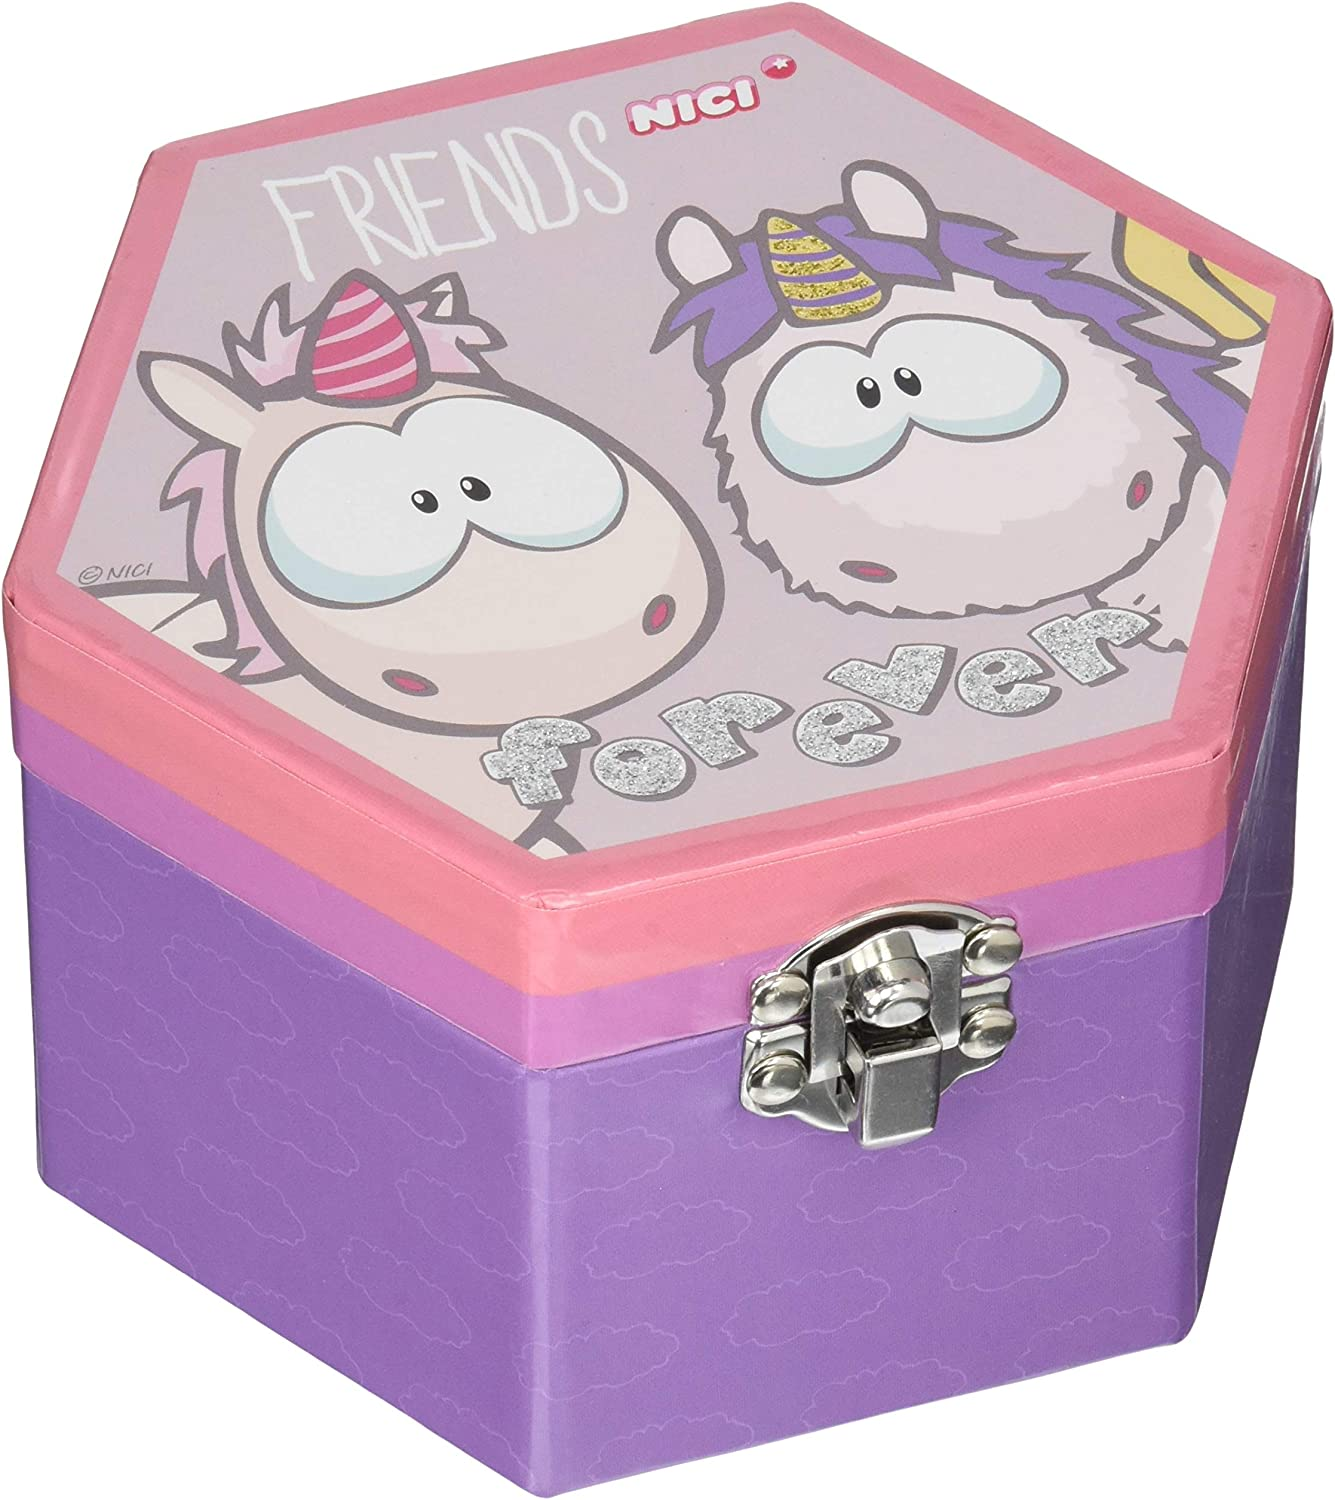 Nici 42340 and Friends - Joyero (13,5 x 8 cm), diseño de Unicornio, Color Blanco y Morado: Amazon.es: Juguetes y juegos